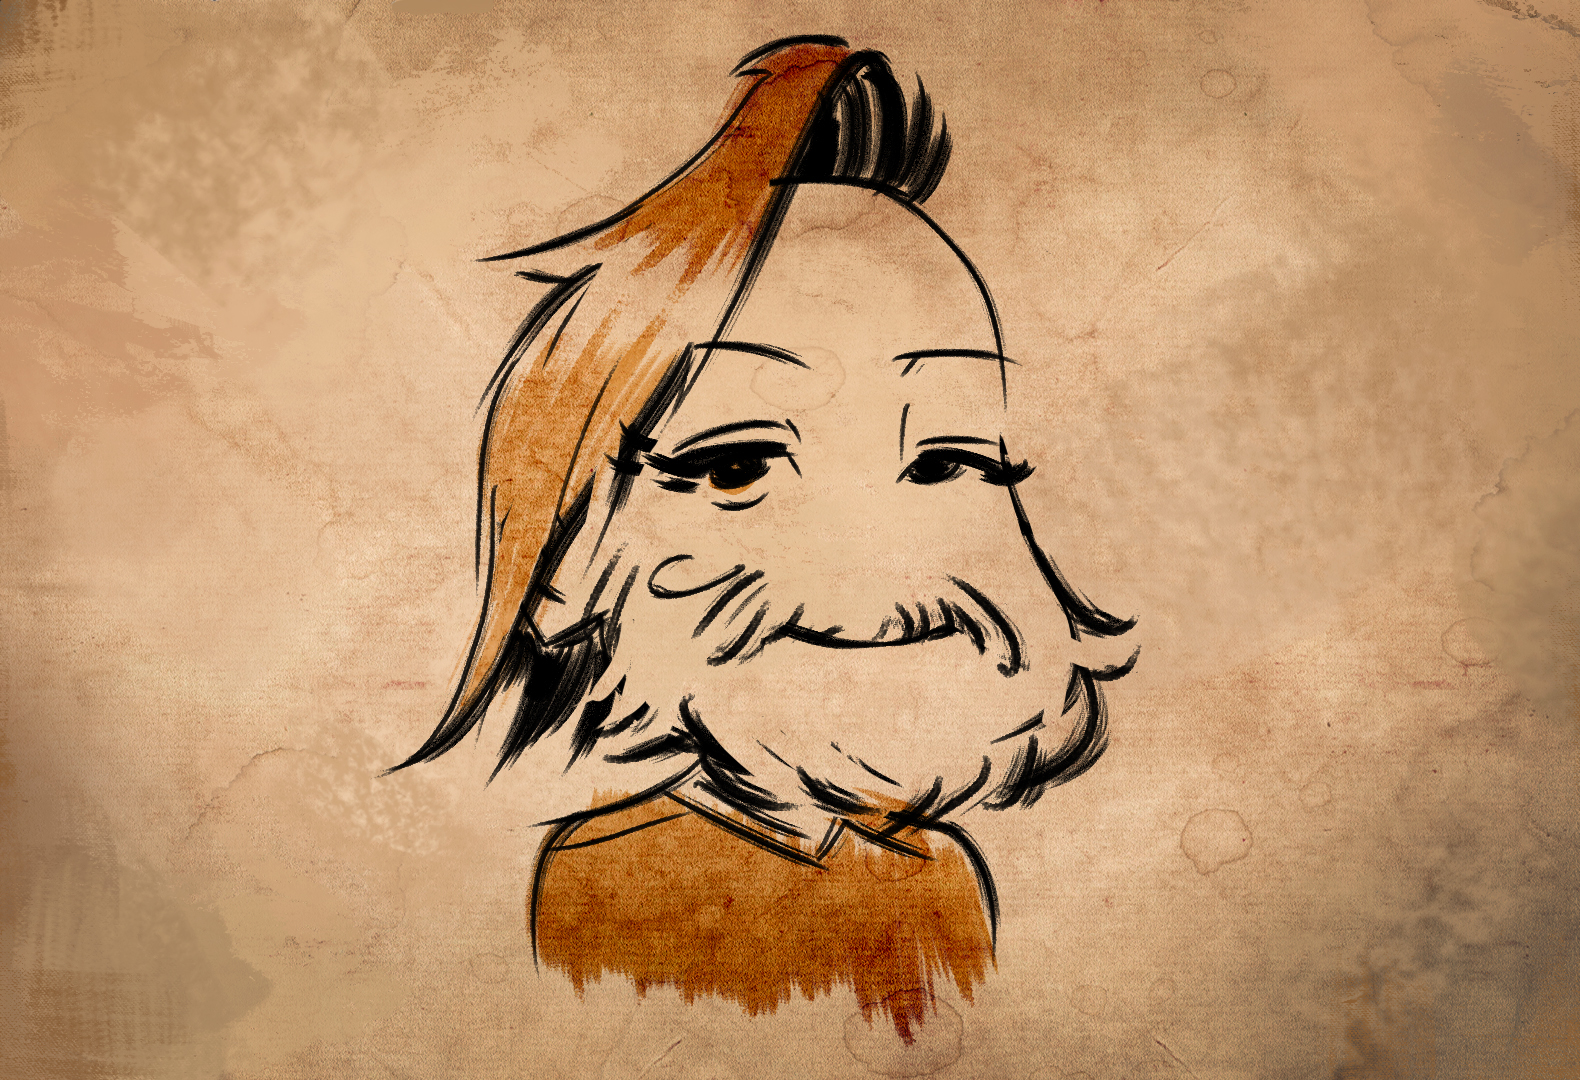 Felipe de Barros — Chibi Beard Benji (fan request on stream)